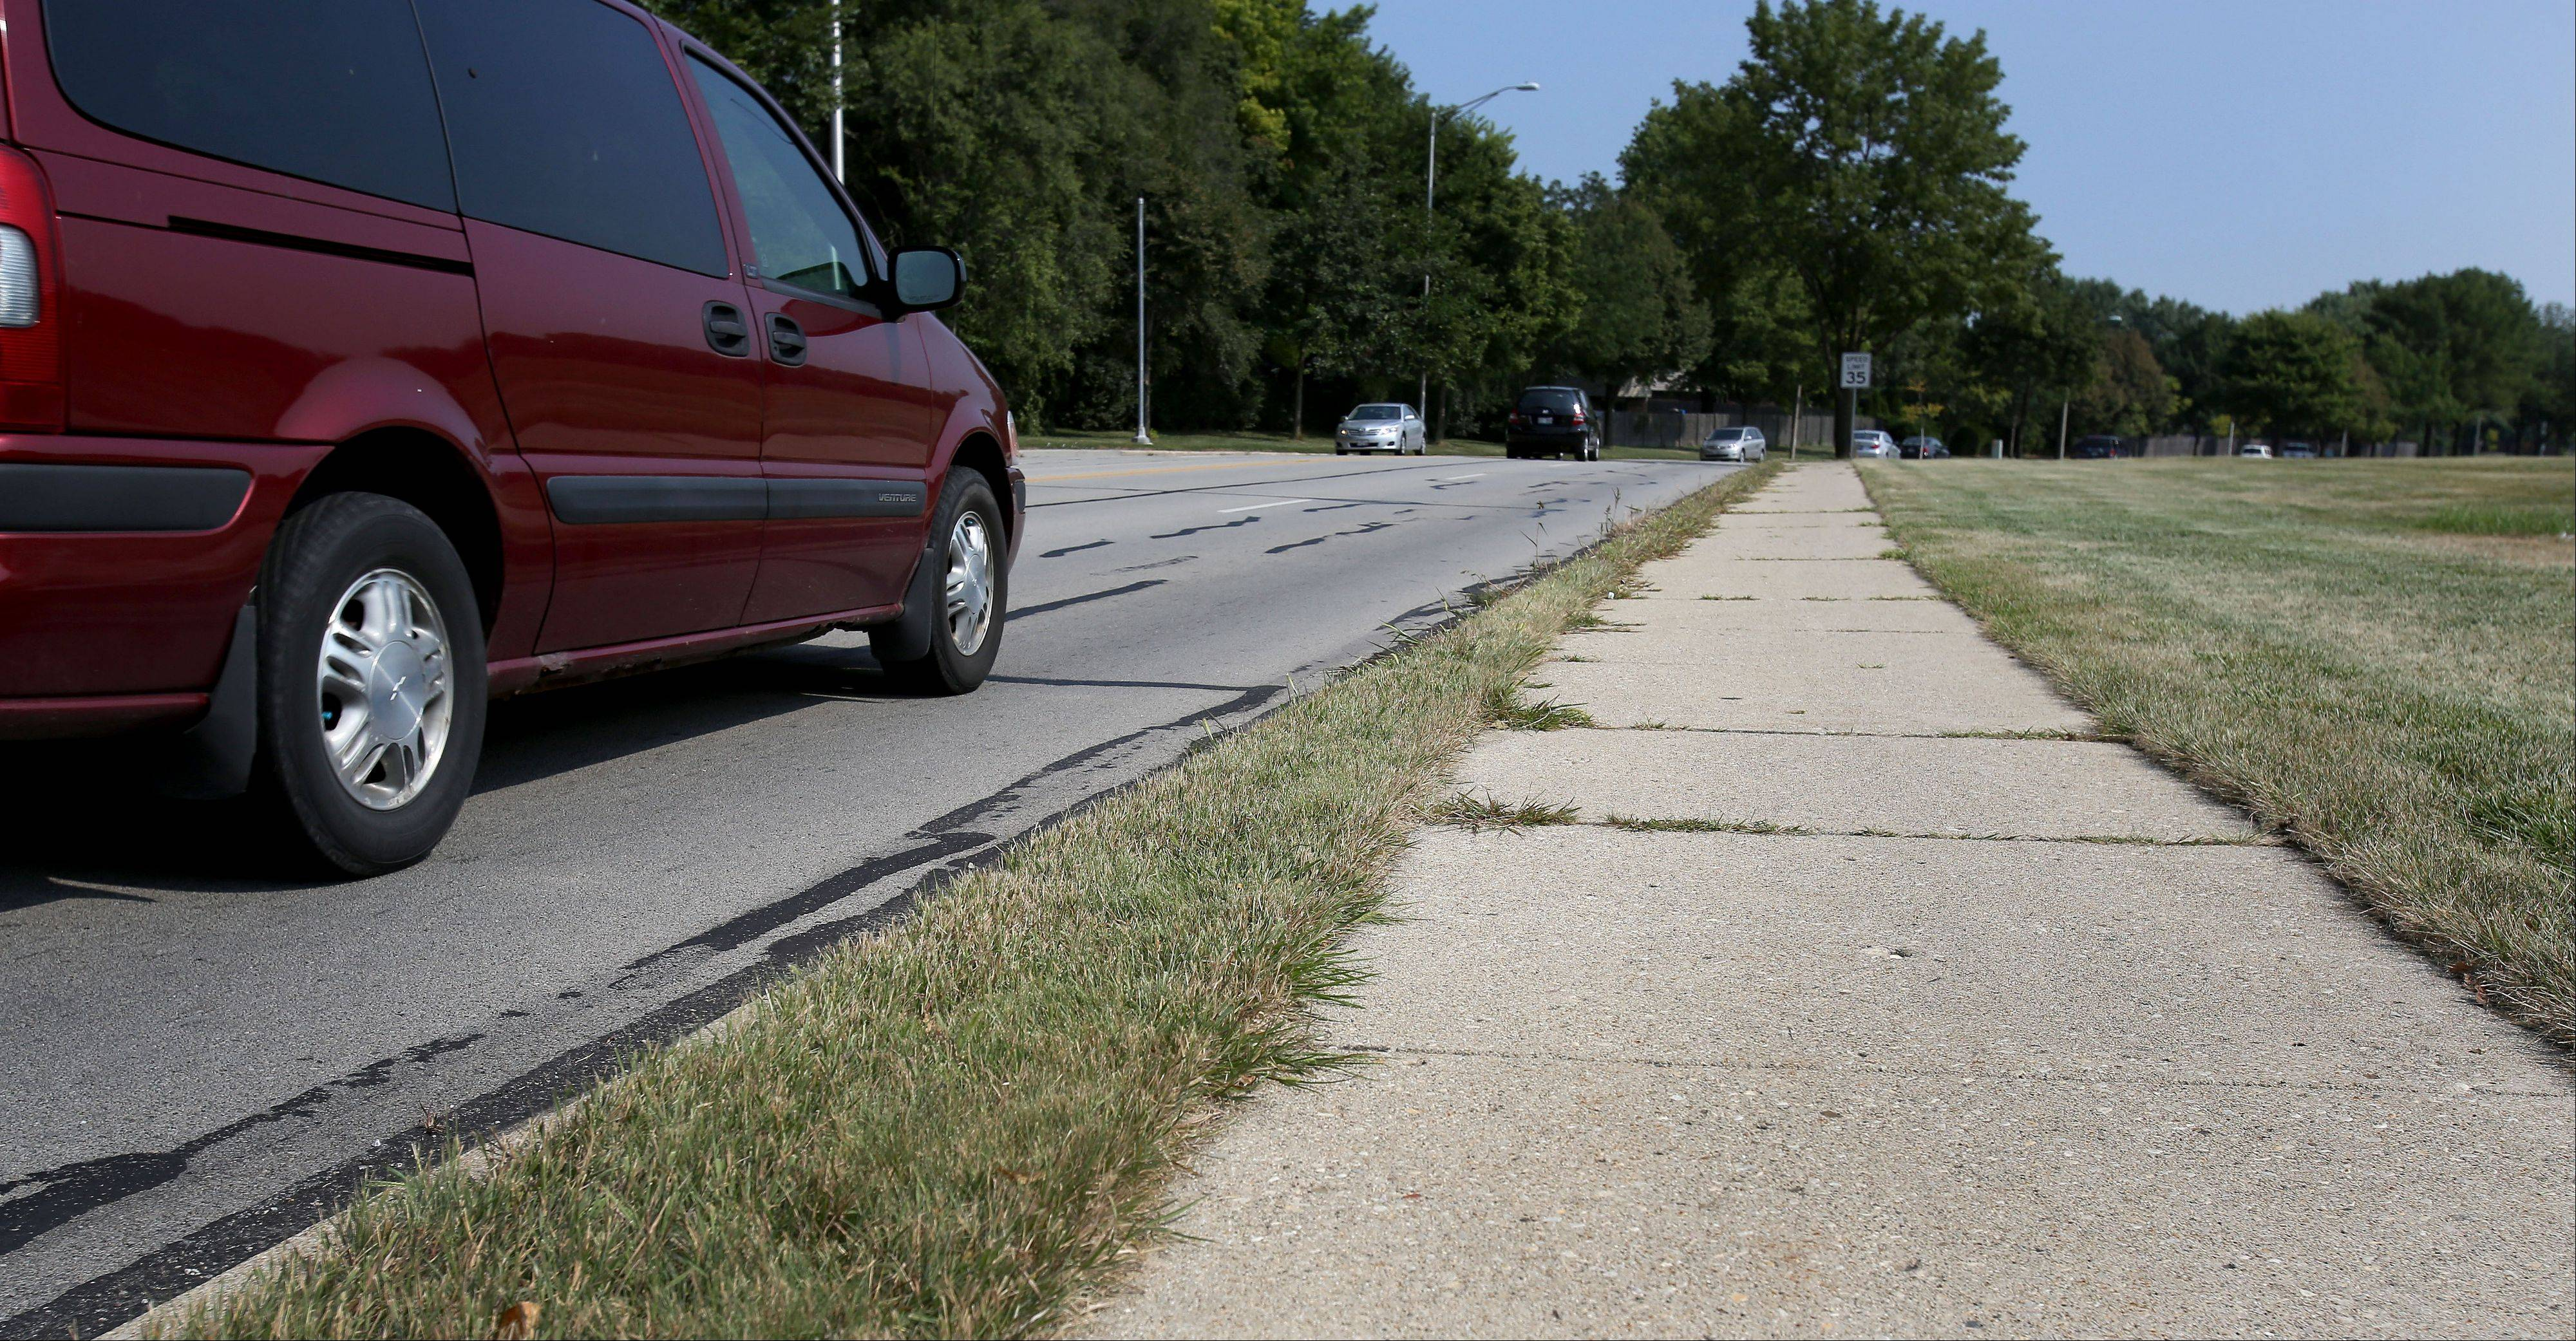 The city of Naperville will be working to move this stretch of sidewalk, on the east side of Washington Street just north of Bauer Road, further from traffic after a resident voiced concerns at Tuesday�s city council meeting. The 200-foot section would cost an estimated $15,000 to move further from the road if Naperville Unit District 203, which owns the land, grants an easement.